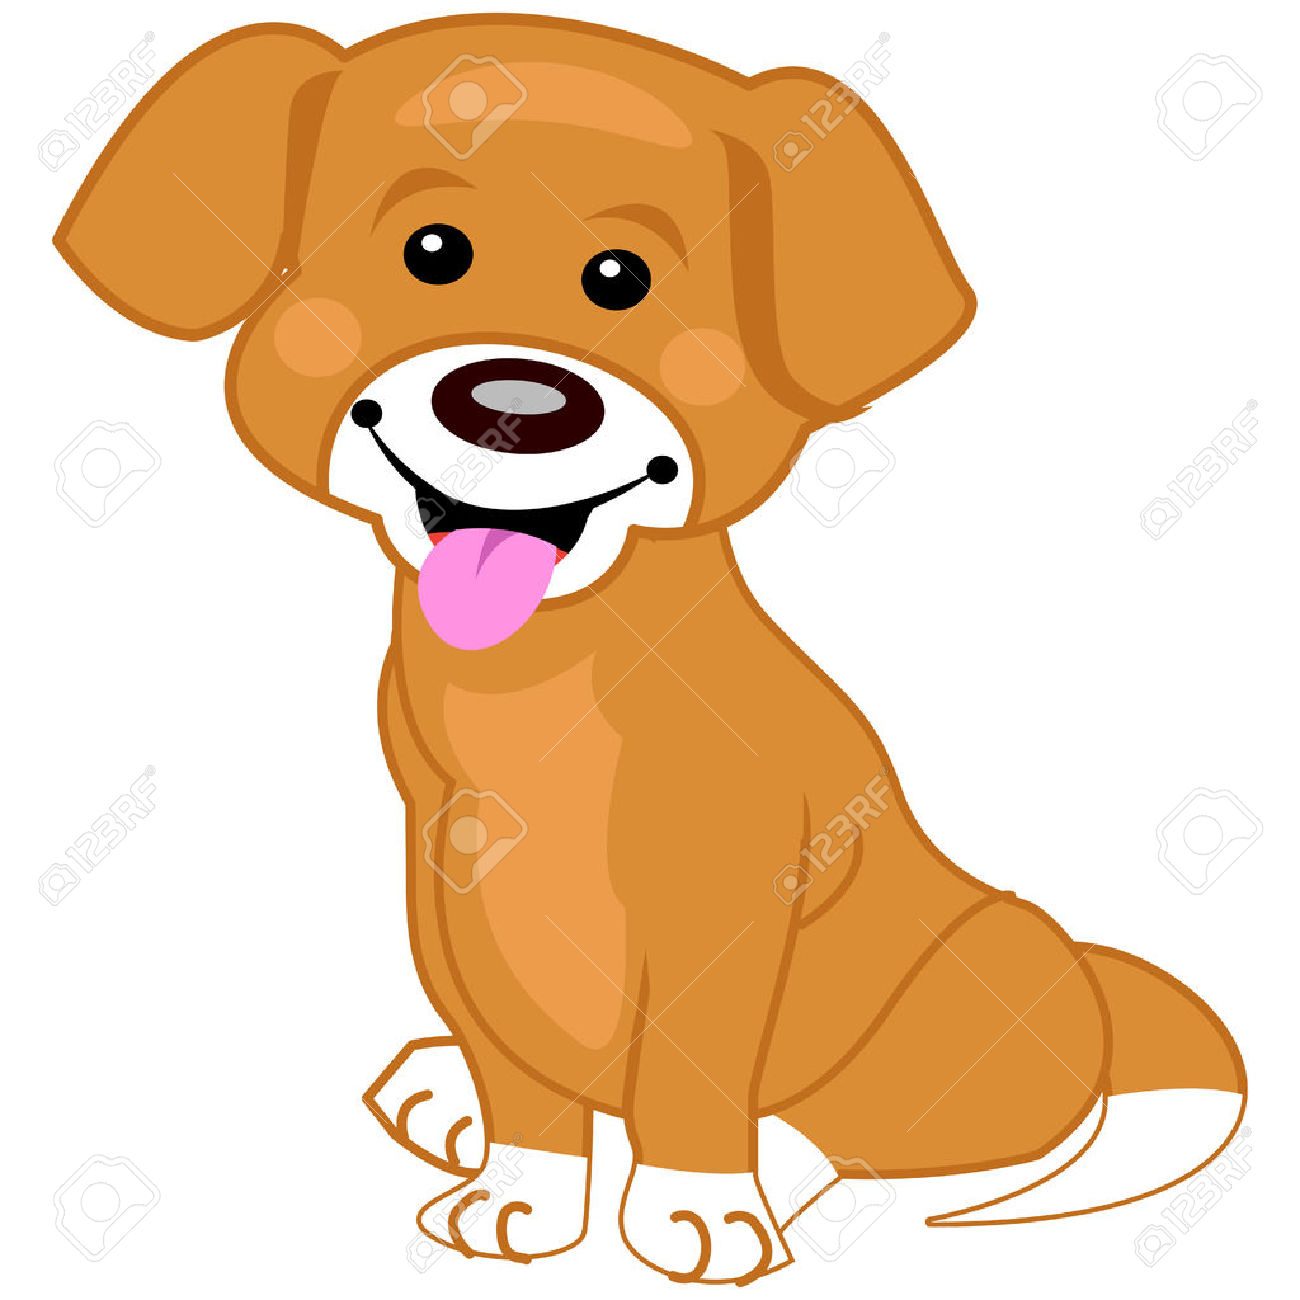 1300x1300 Golden Retriever Puppy Clip Art. Royalty Free Golden Retriever